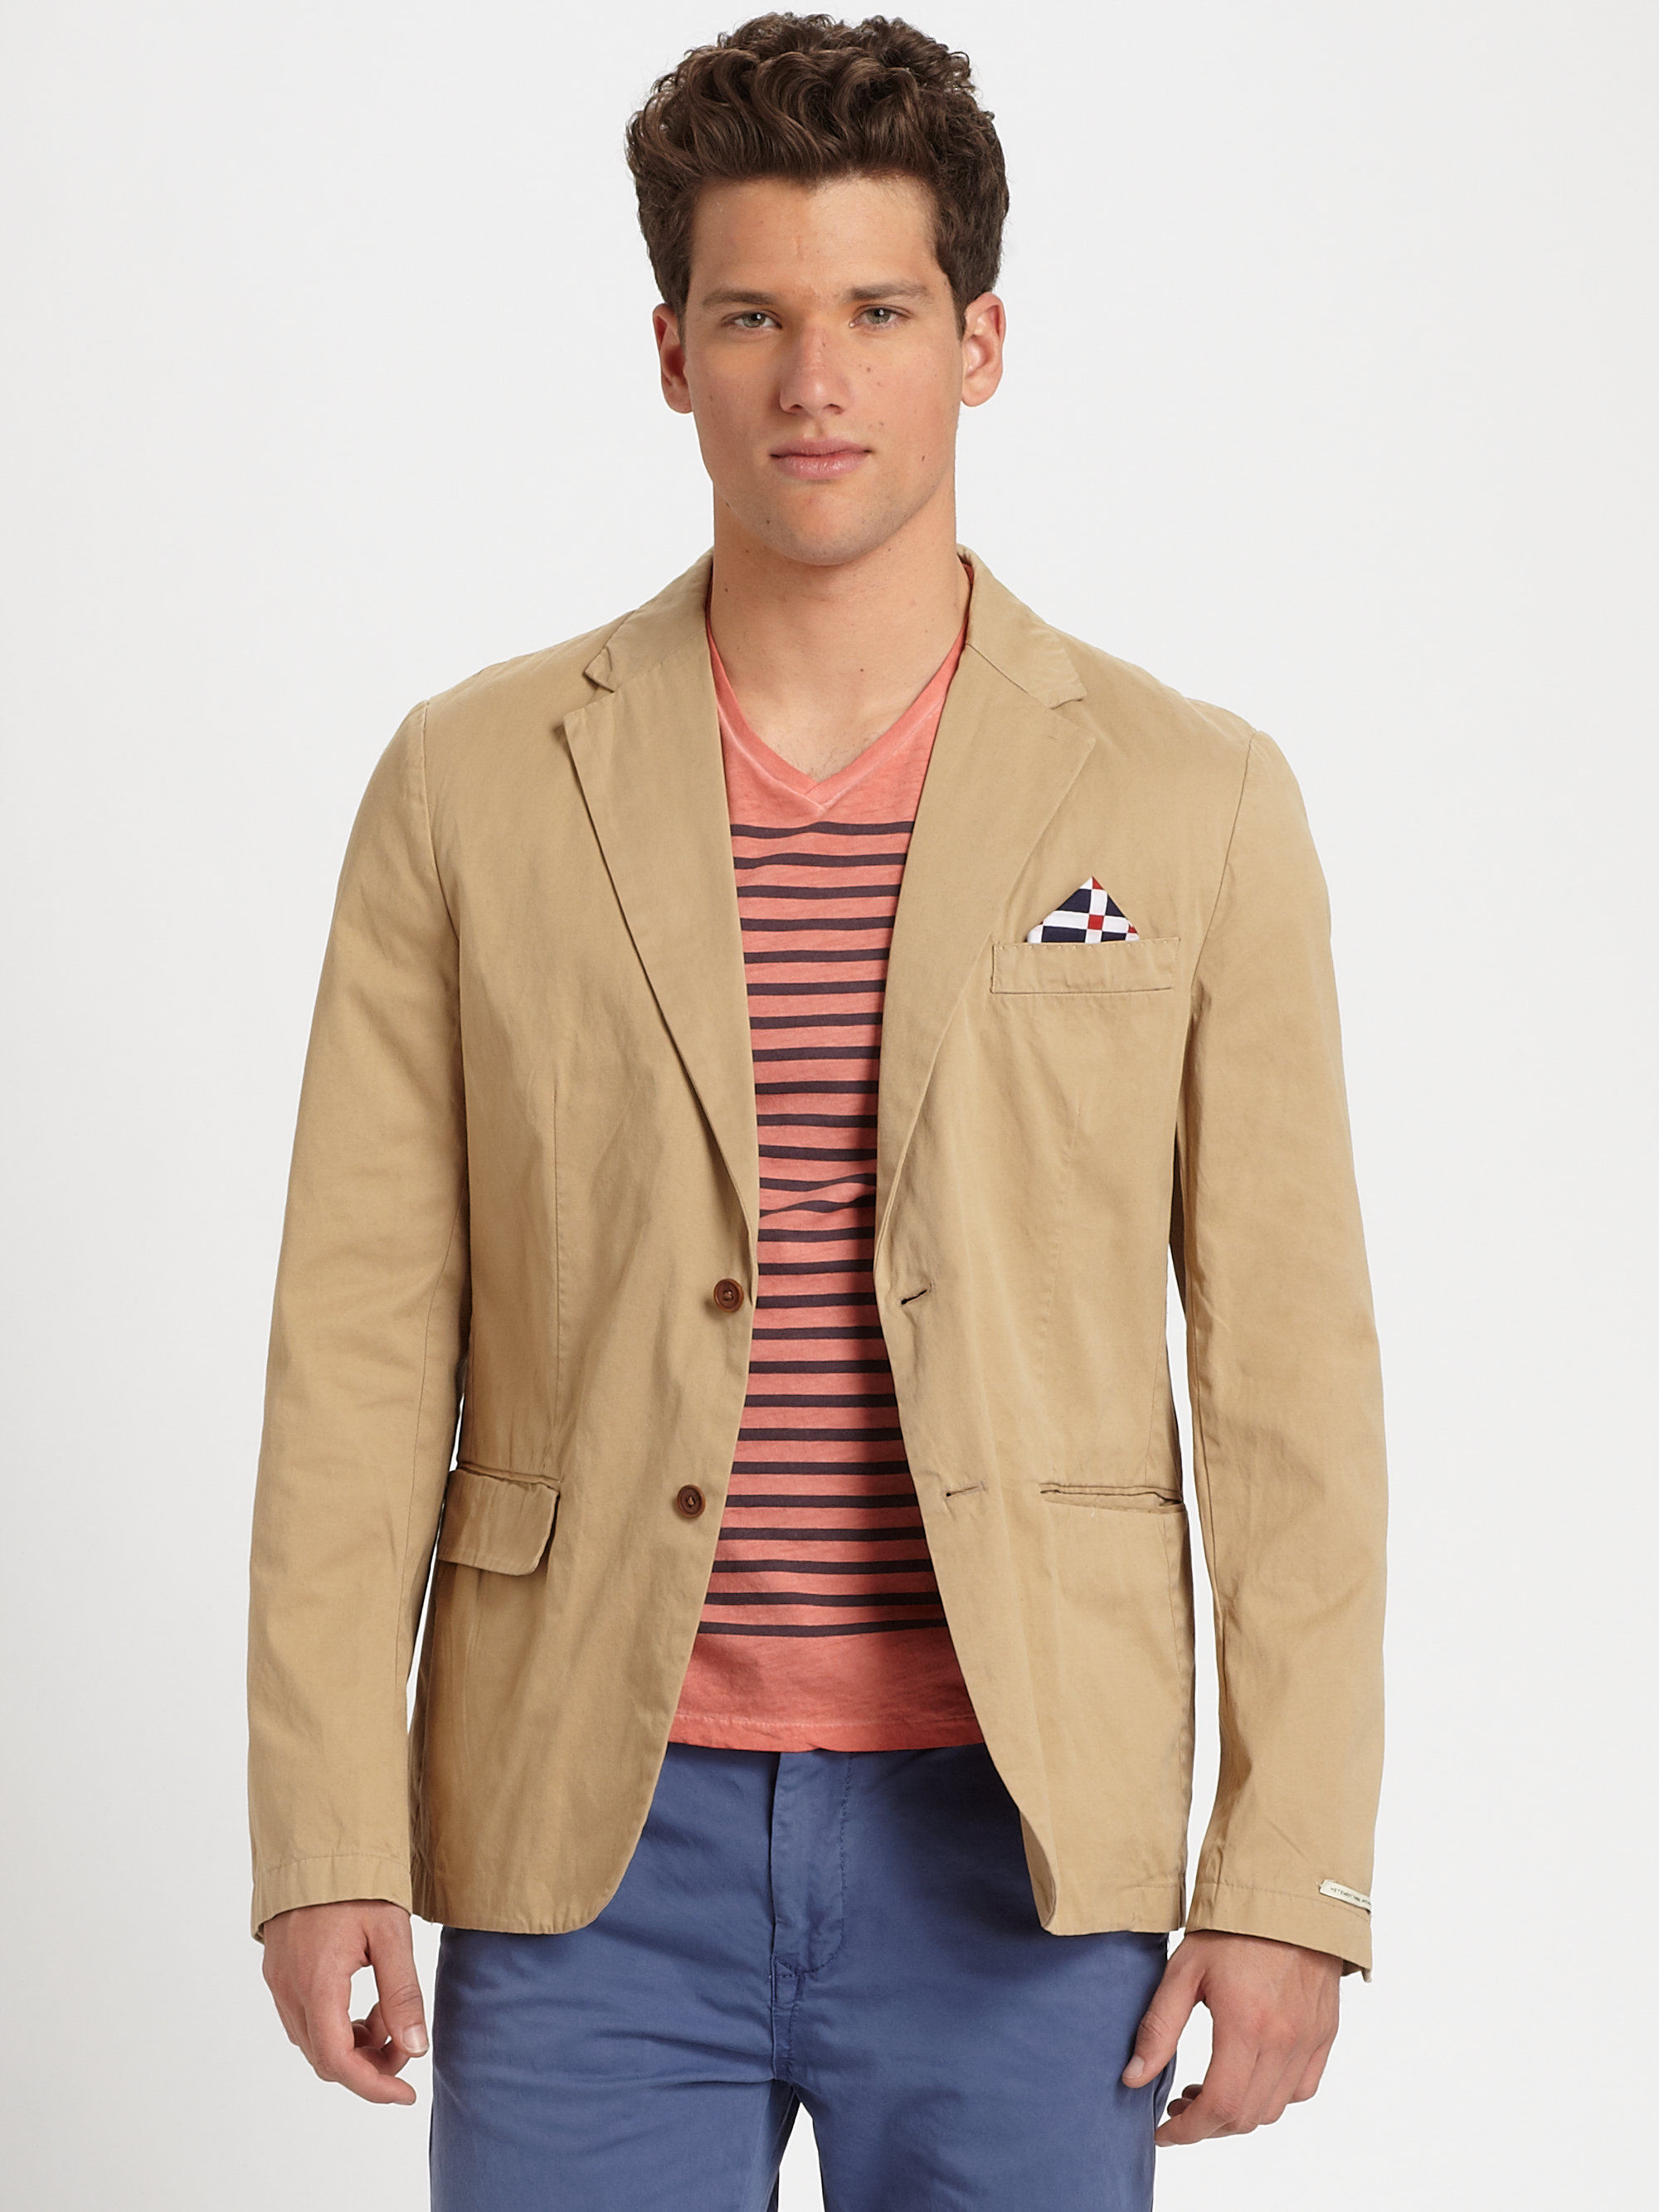 Men LINEN COTTON BLAZER is rated out of 5 by 4. Rated 4 out of 5 by Detroit Mike from Needs a little work Jacket fits ok (for the price, can't complain too /5(4).